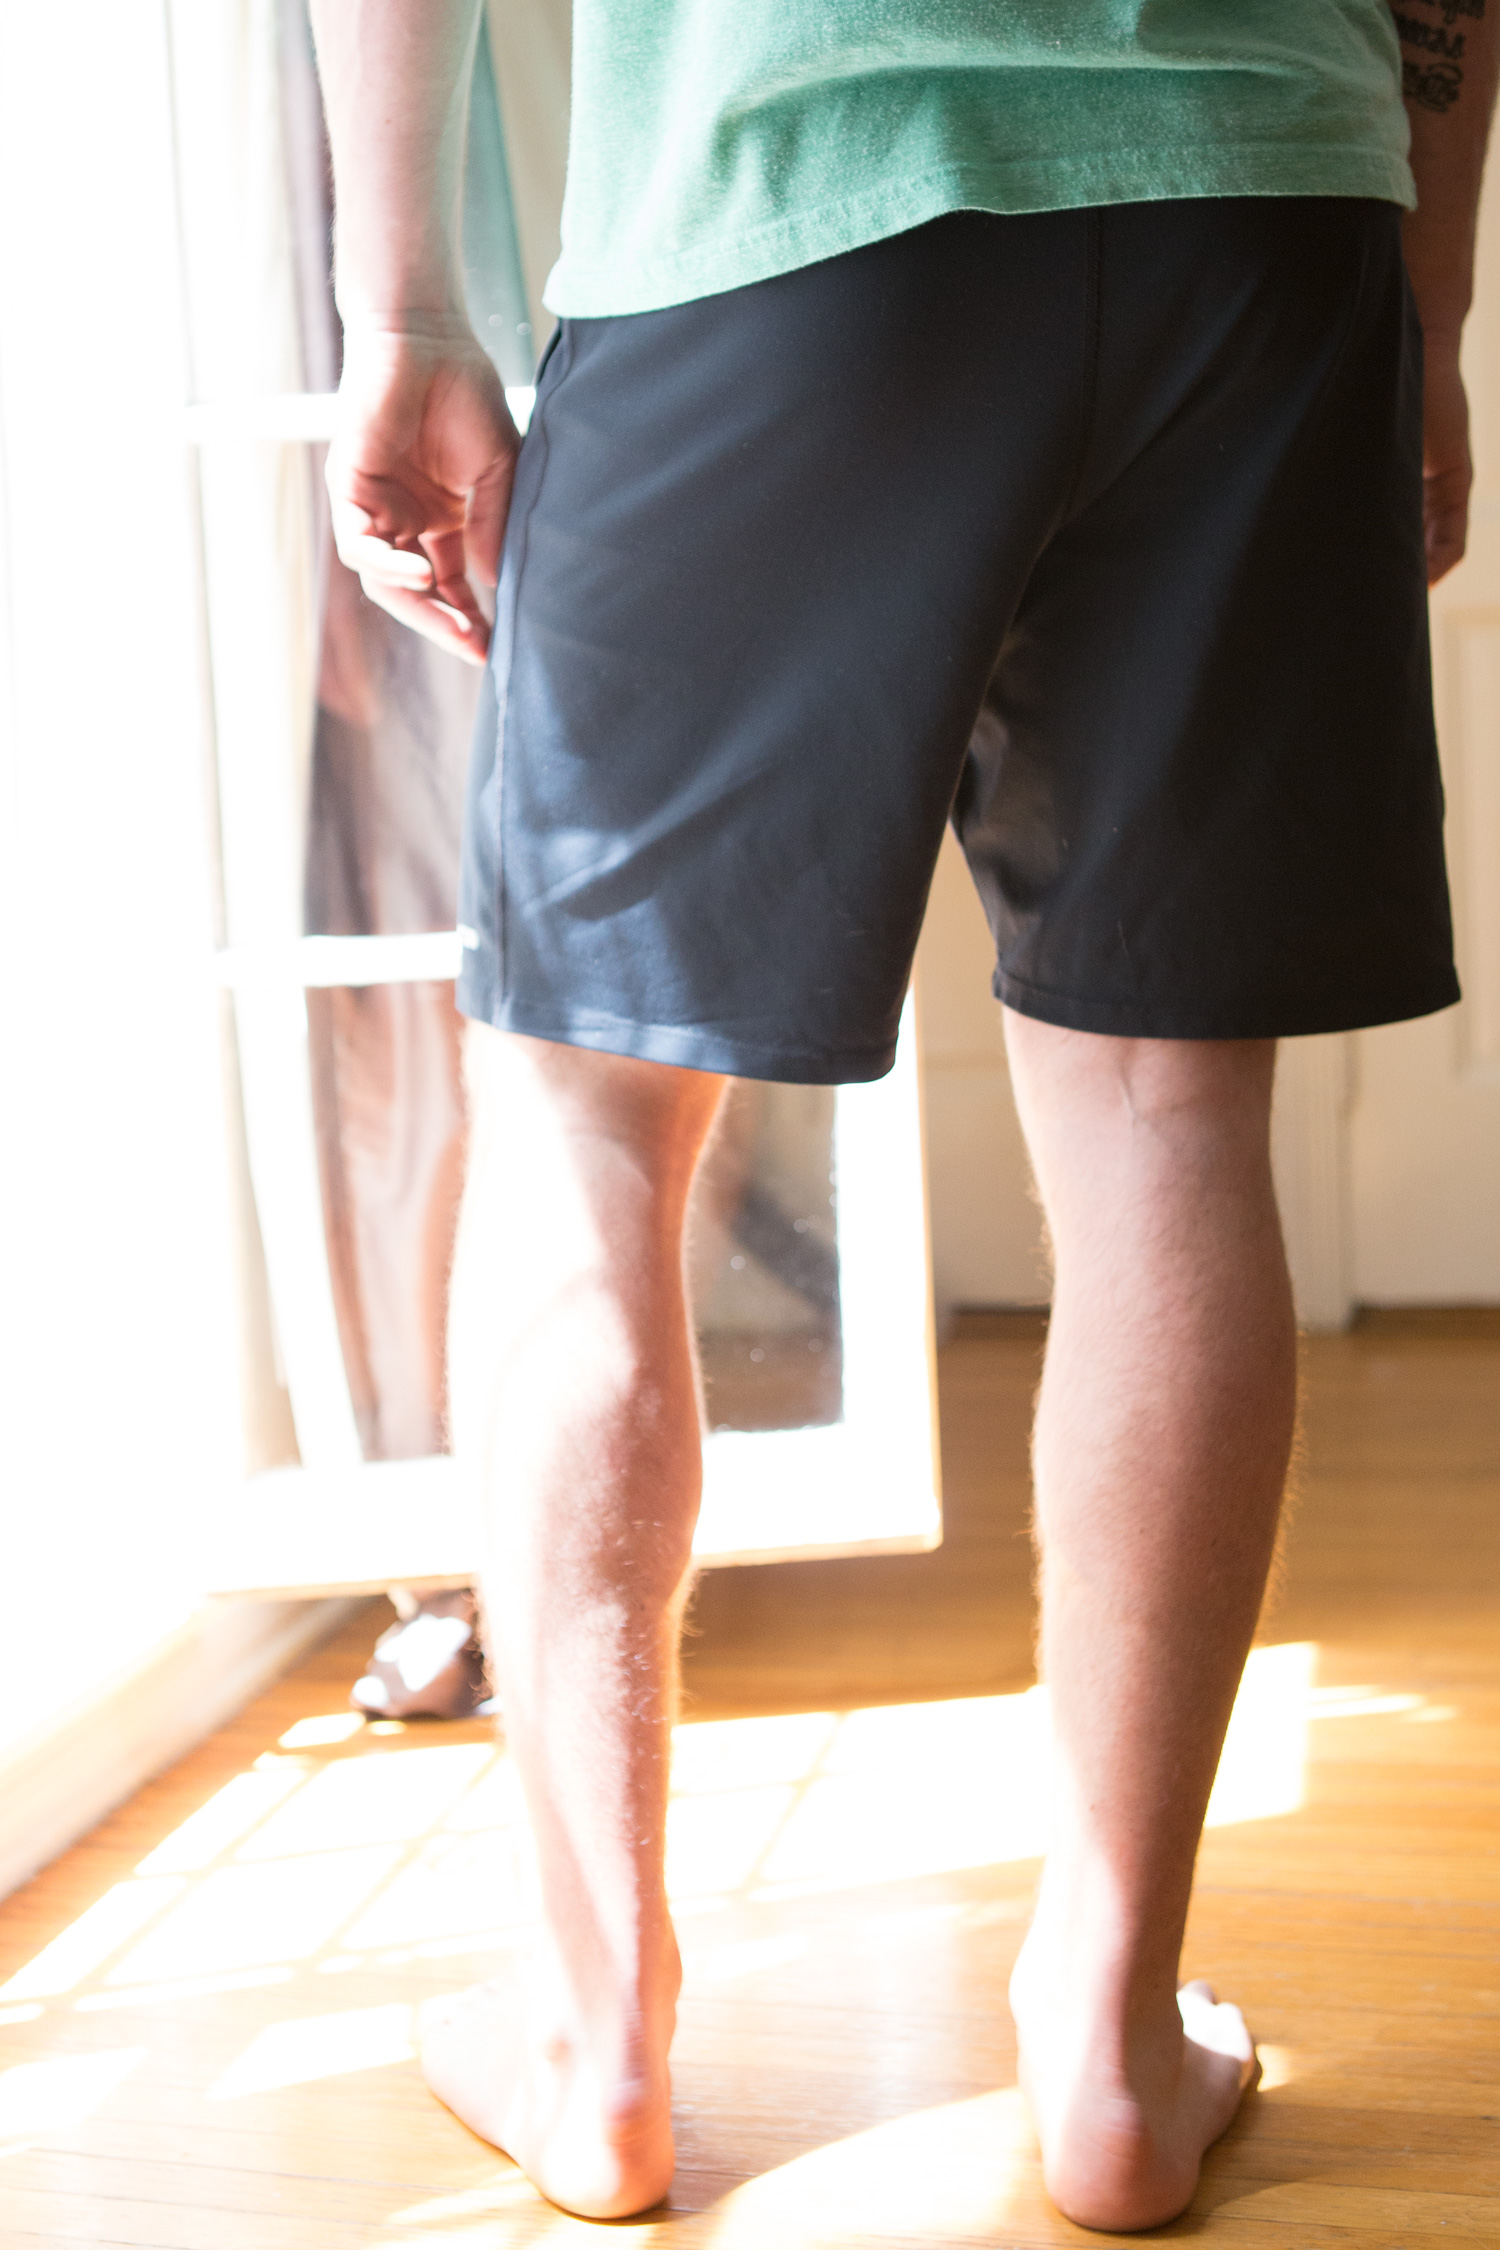 you can see how the shorts stretch here.